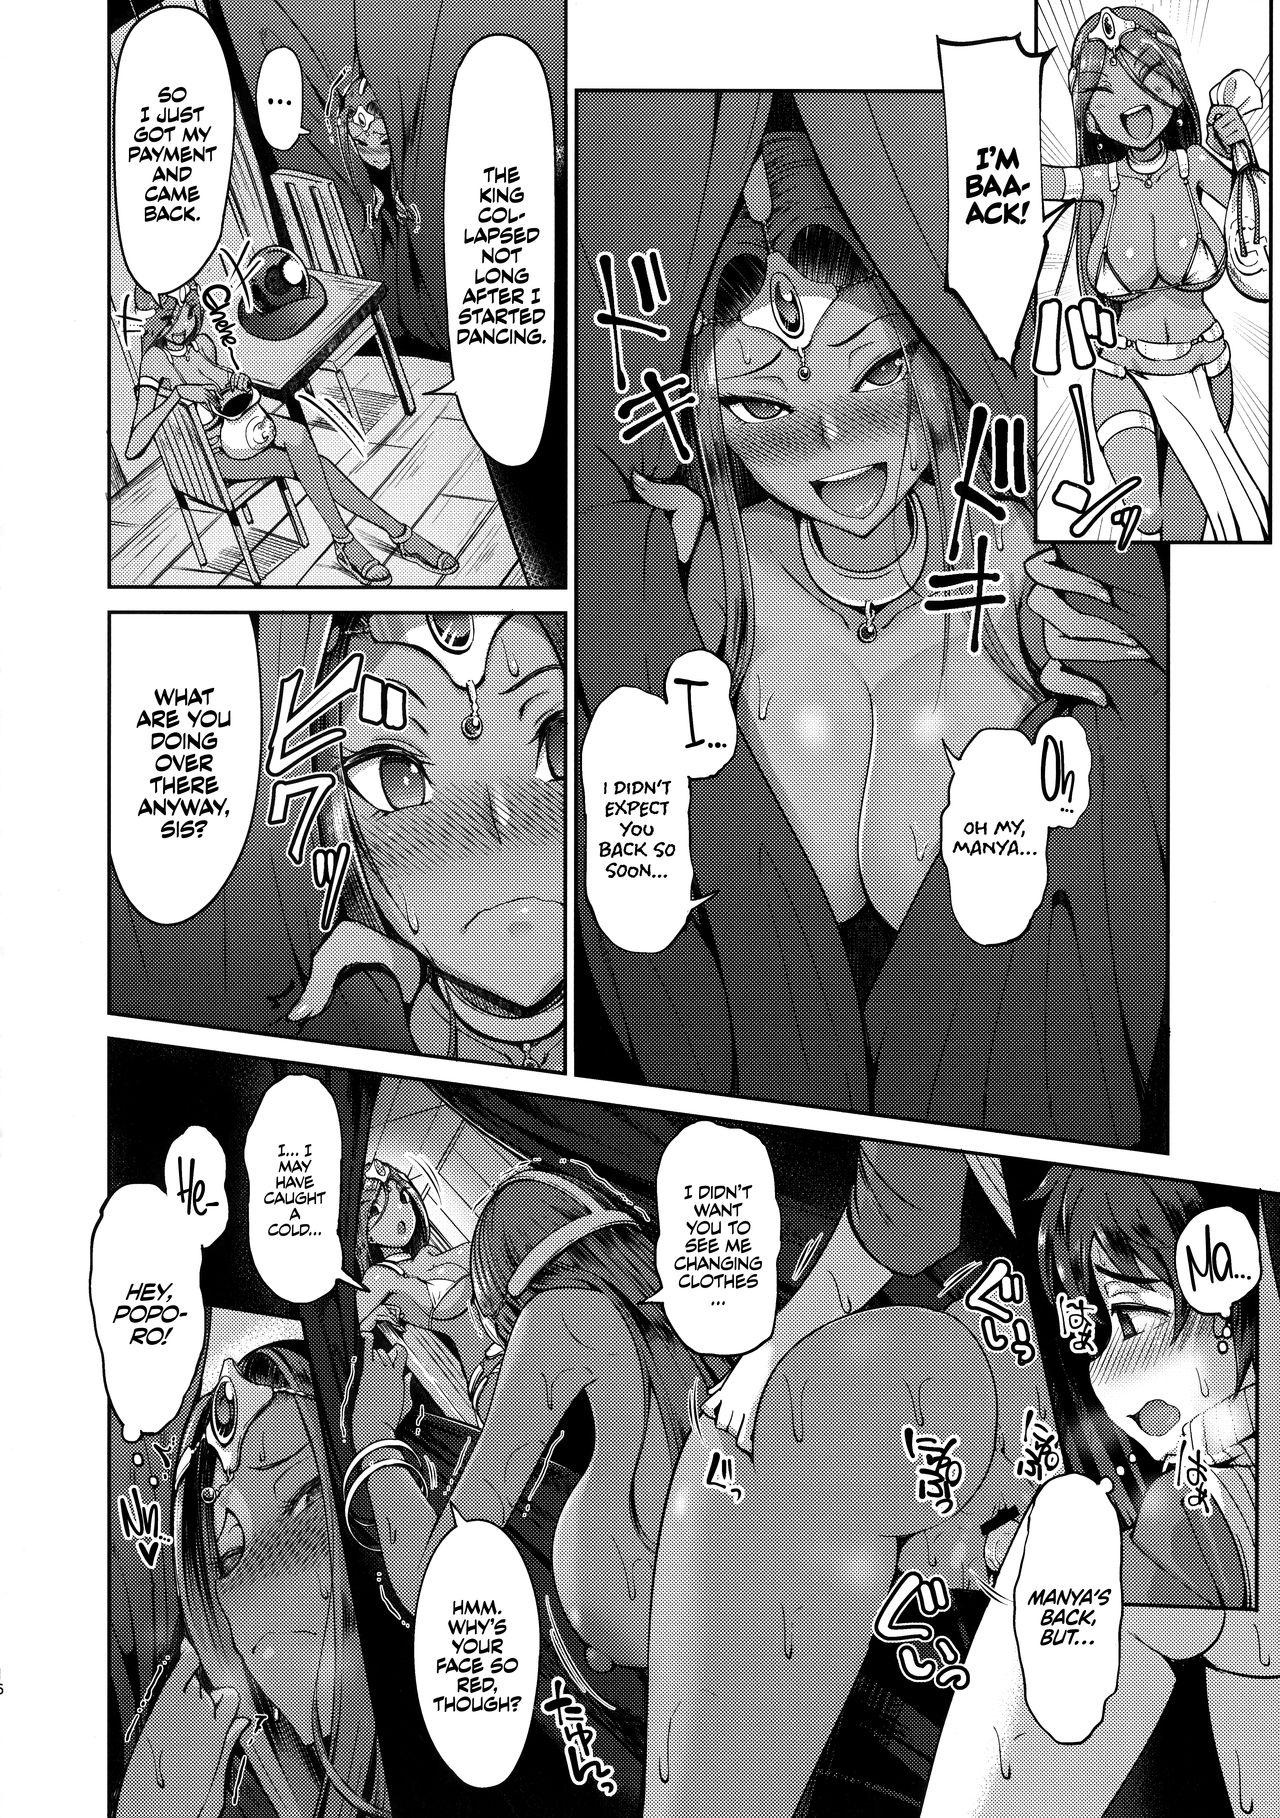 (C97) [Arearee] Manya-san to Minea-san to Matamata Are Suru Hon   Yet Another Manya And Minea Doing You-Know-What Book (Dragon Quest IV) [English] =TLL + mrwayne= 14